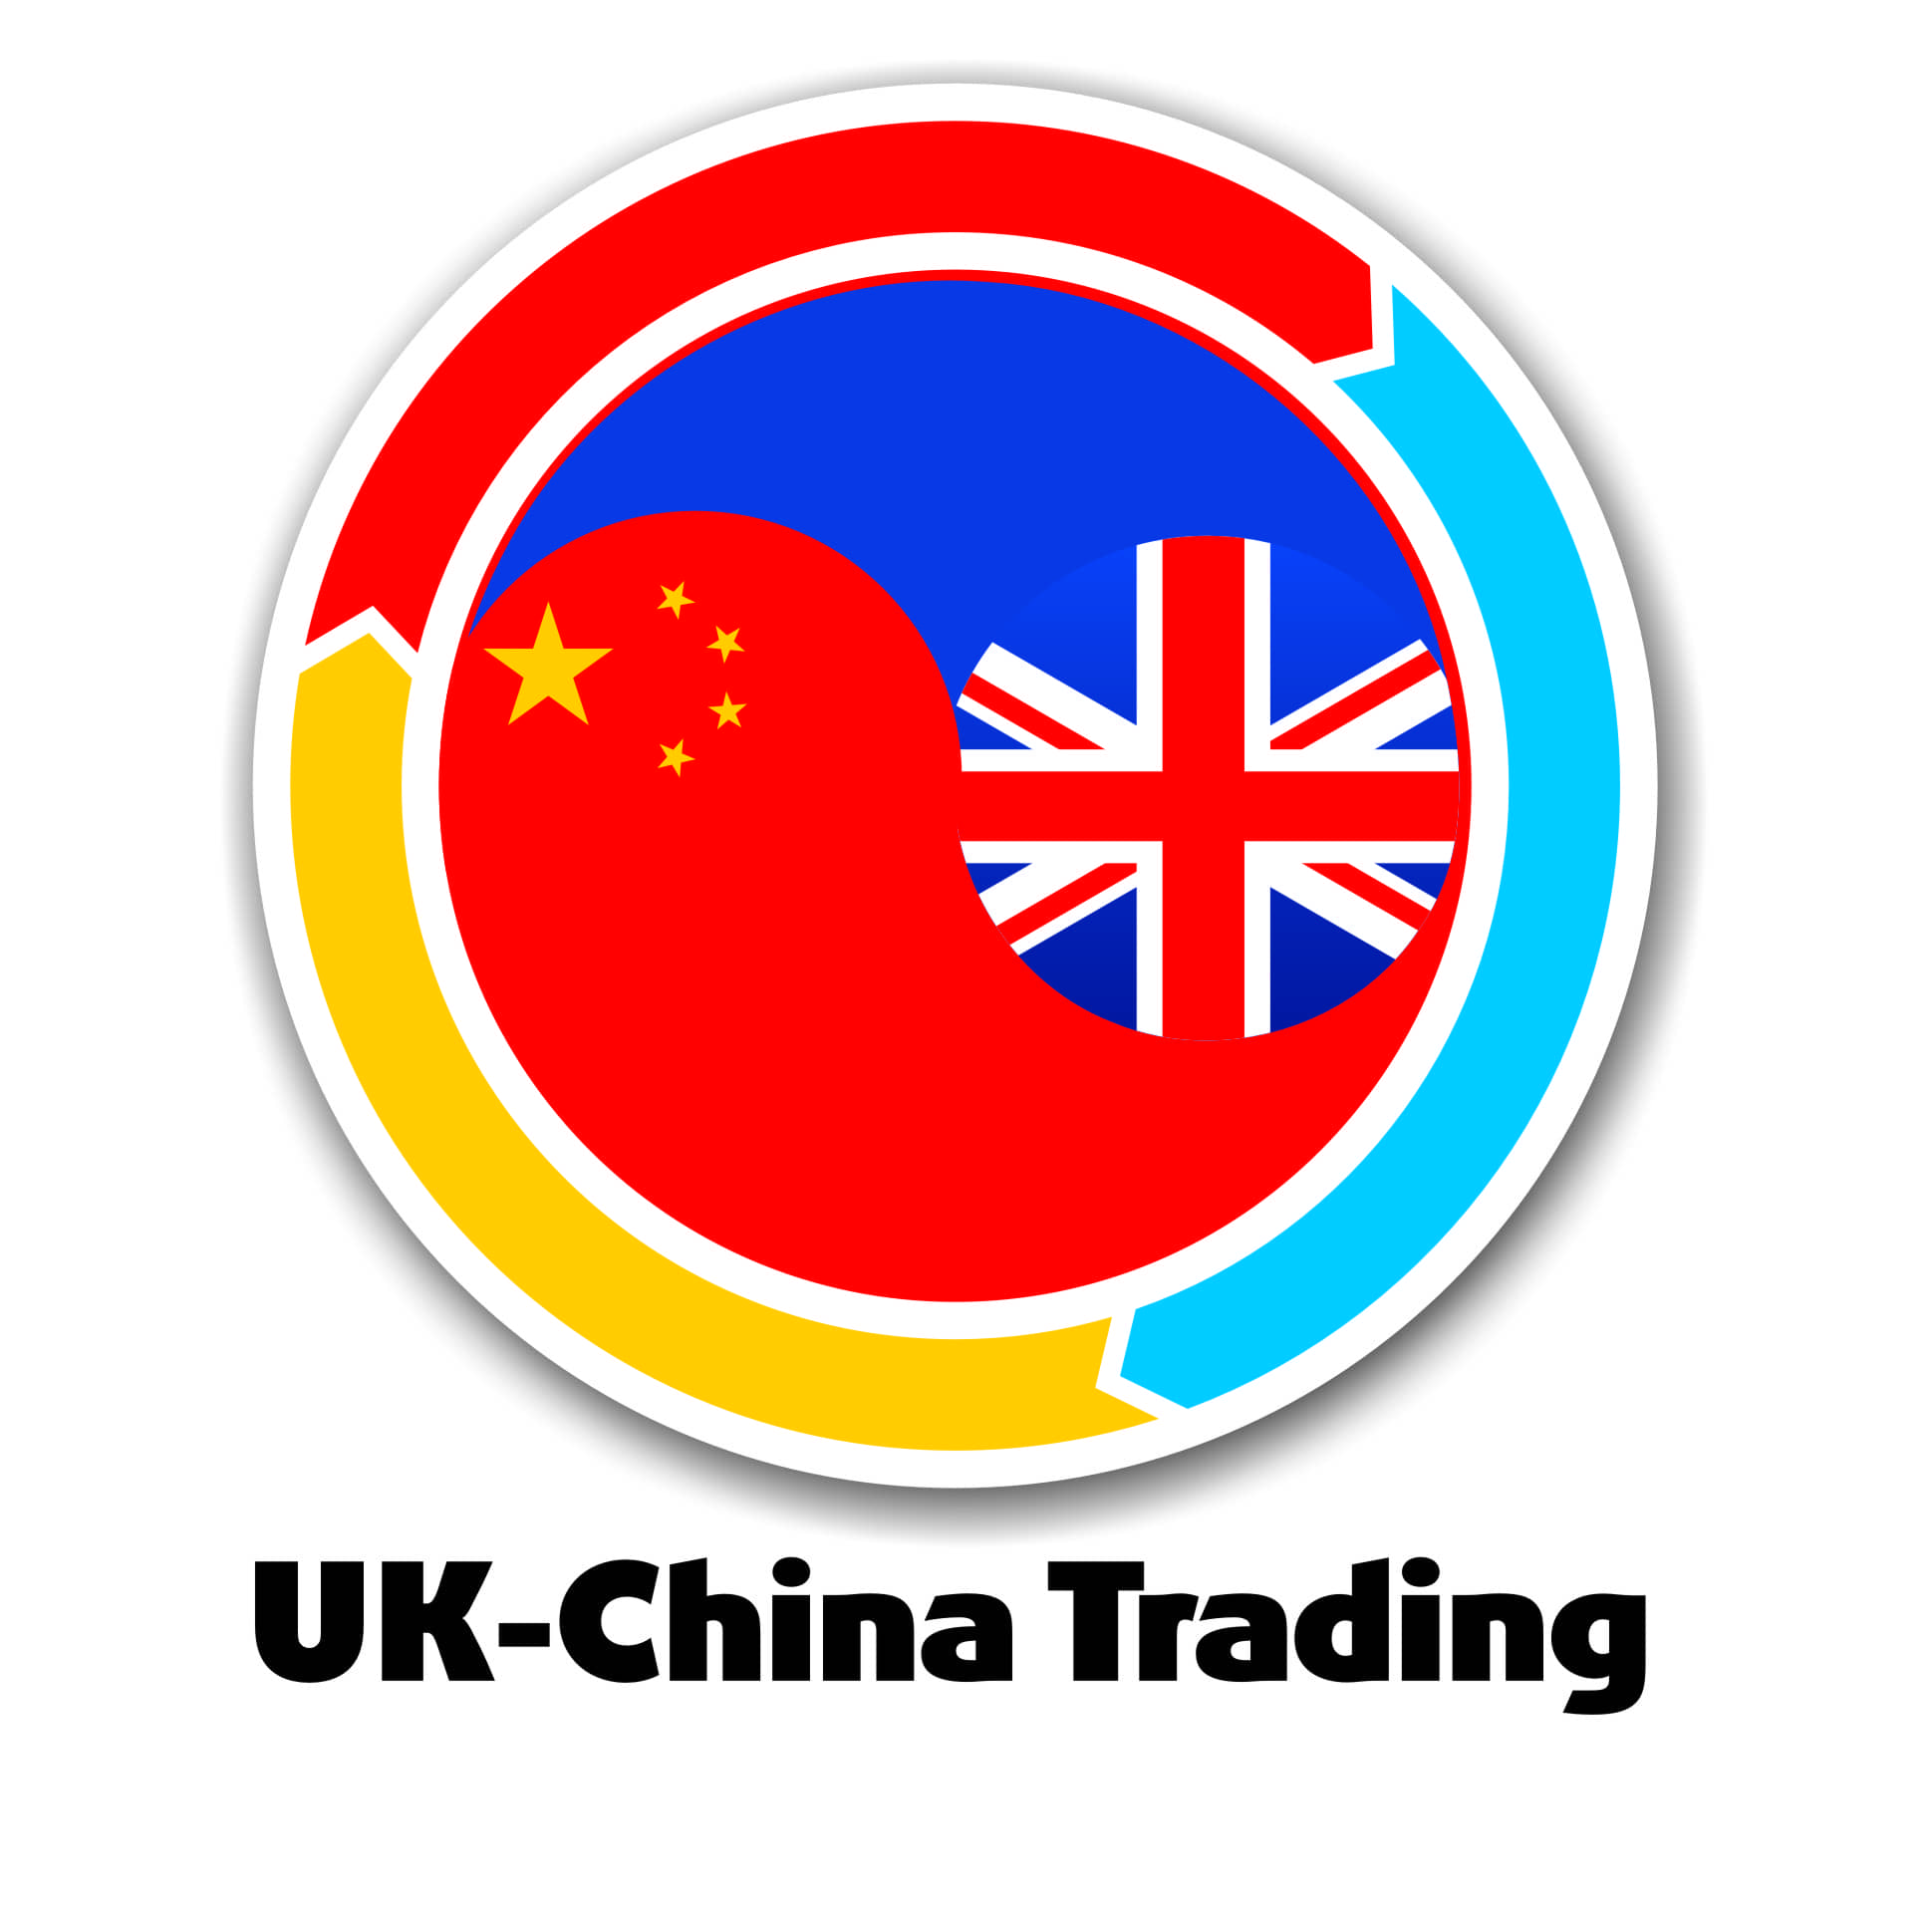 UK China Treding